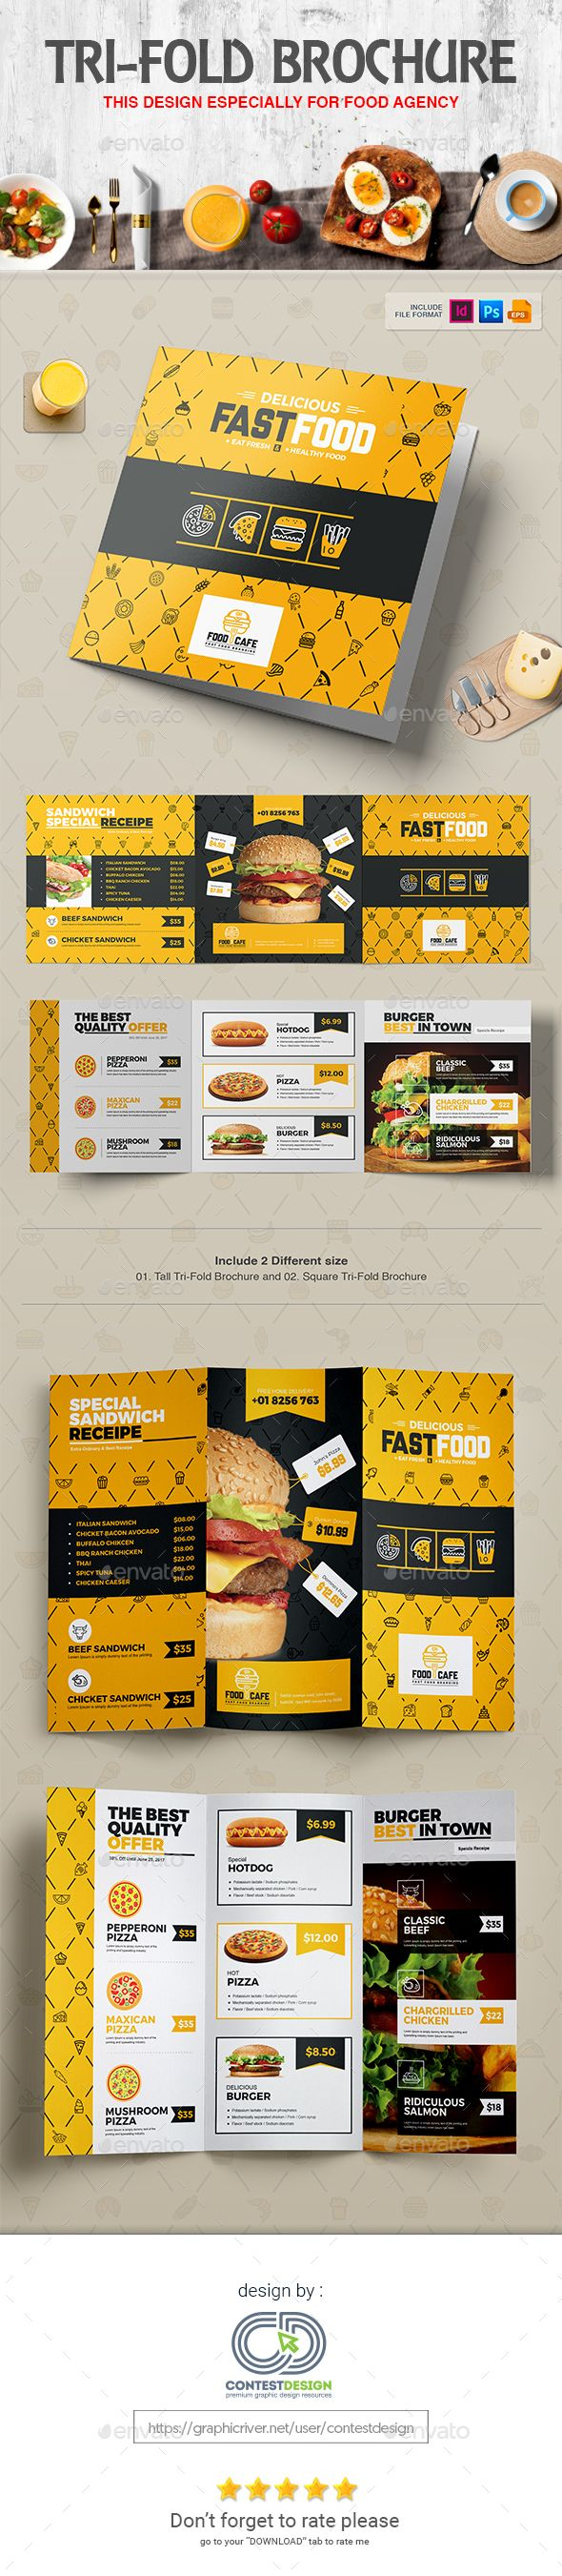 Tri-Fold Brochure (Square & Tall) Design Template for Fast Food / Restaurants / Cafe - Templates PSD, Vector EPS, InDesign INDD, AI Illustrator